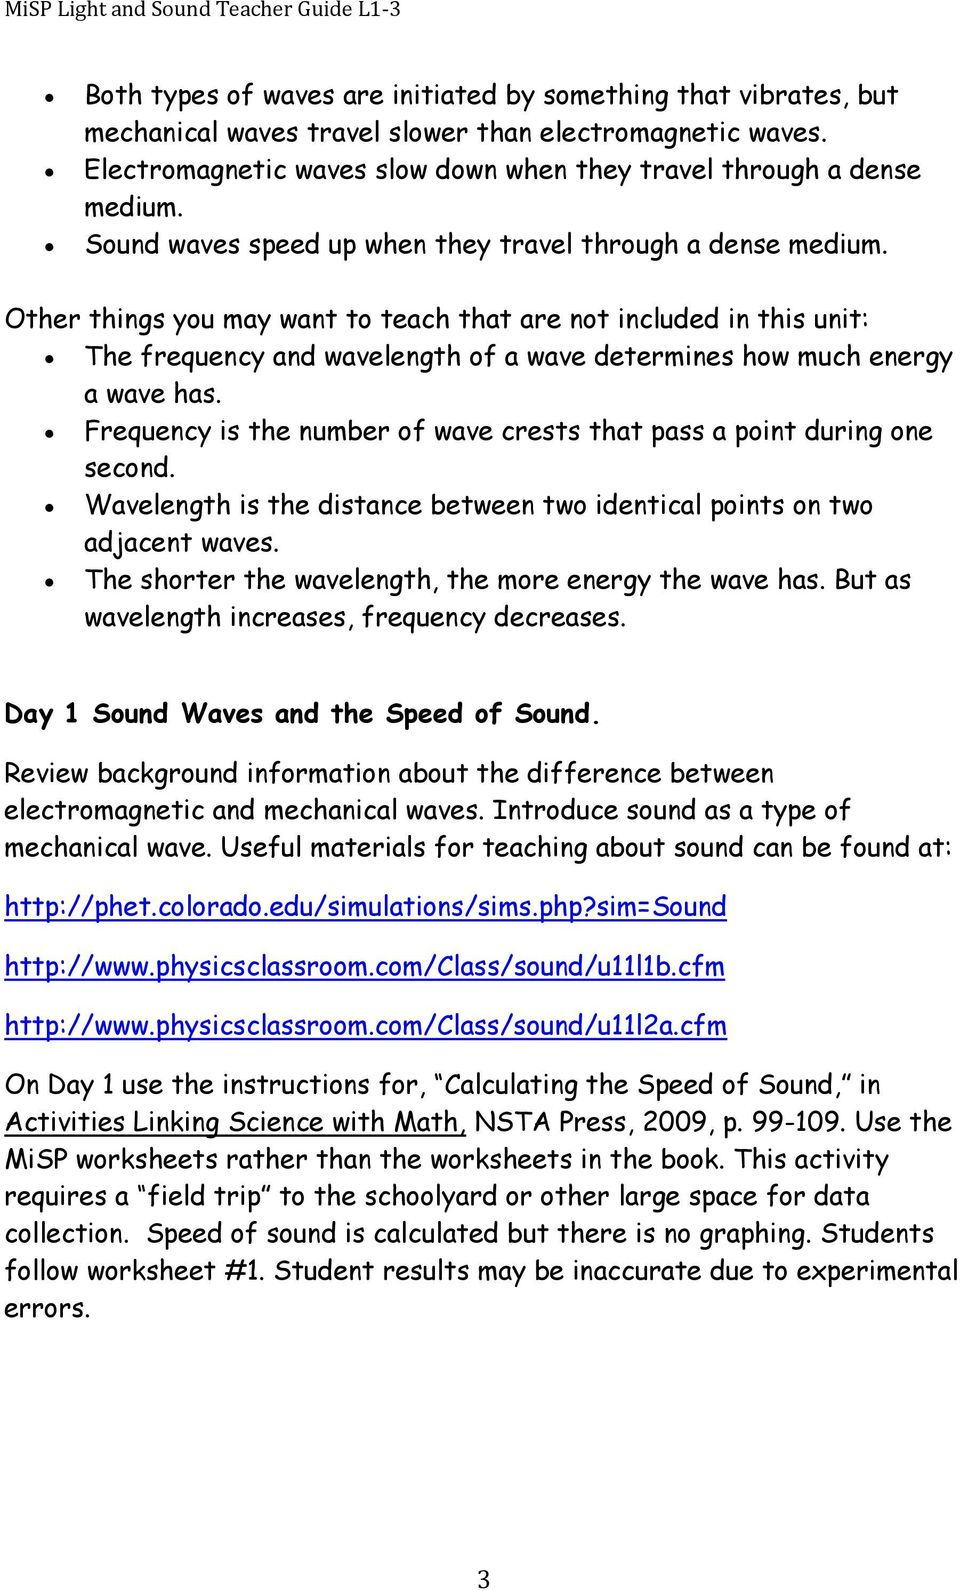 Other things you may want to teach that are not included in this unit: The frequency and wavelength of a wave determines how much energy a wave has.